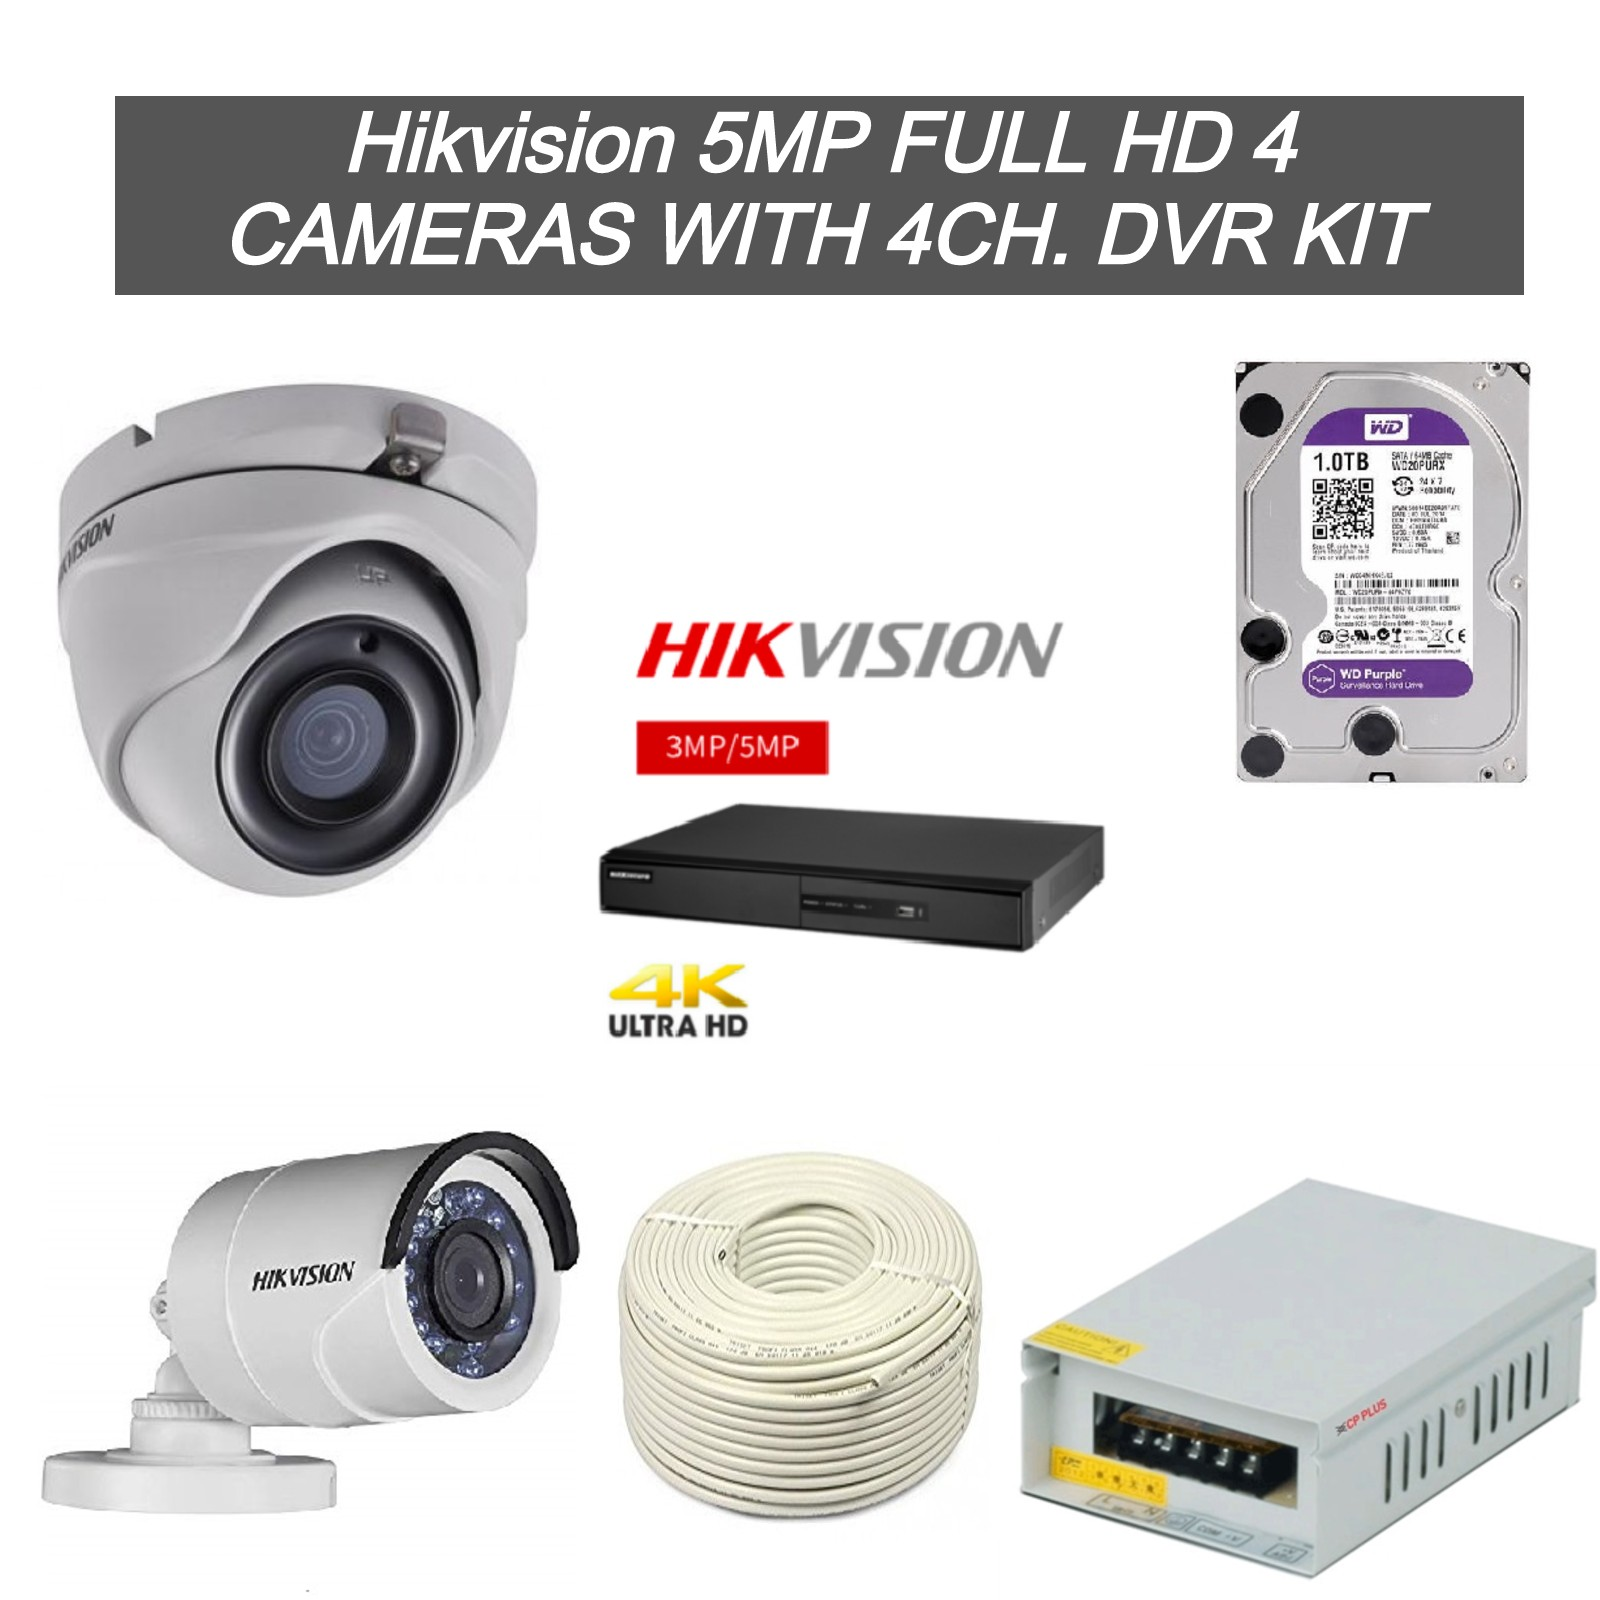 Hikvision 5MP Full HD 4 CCTV Cameras with 4Ch. DVR Kit